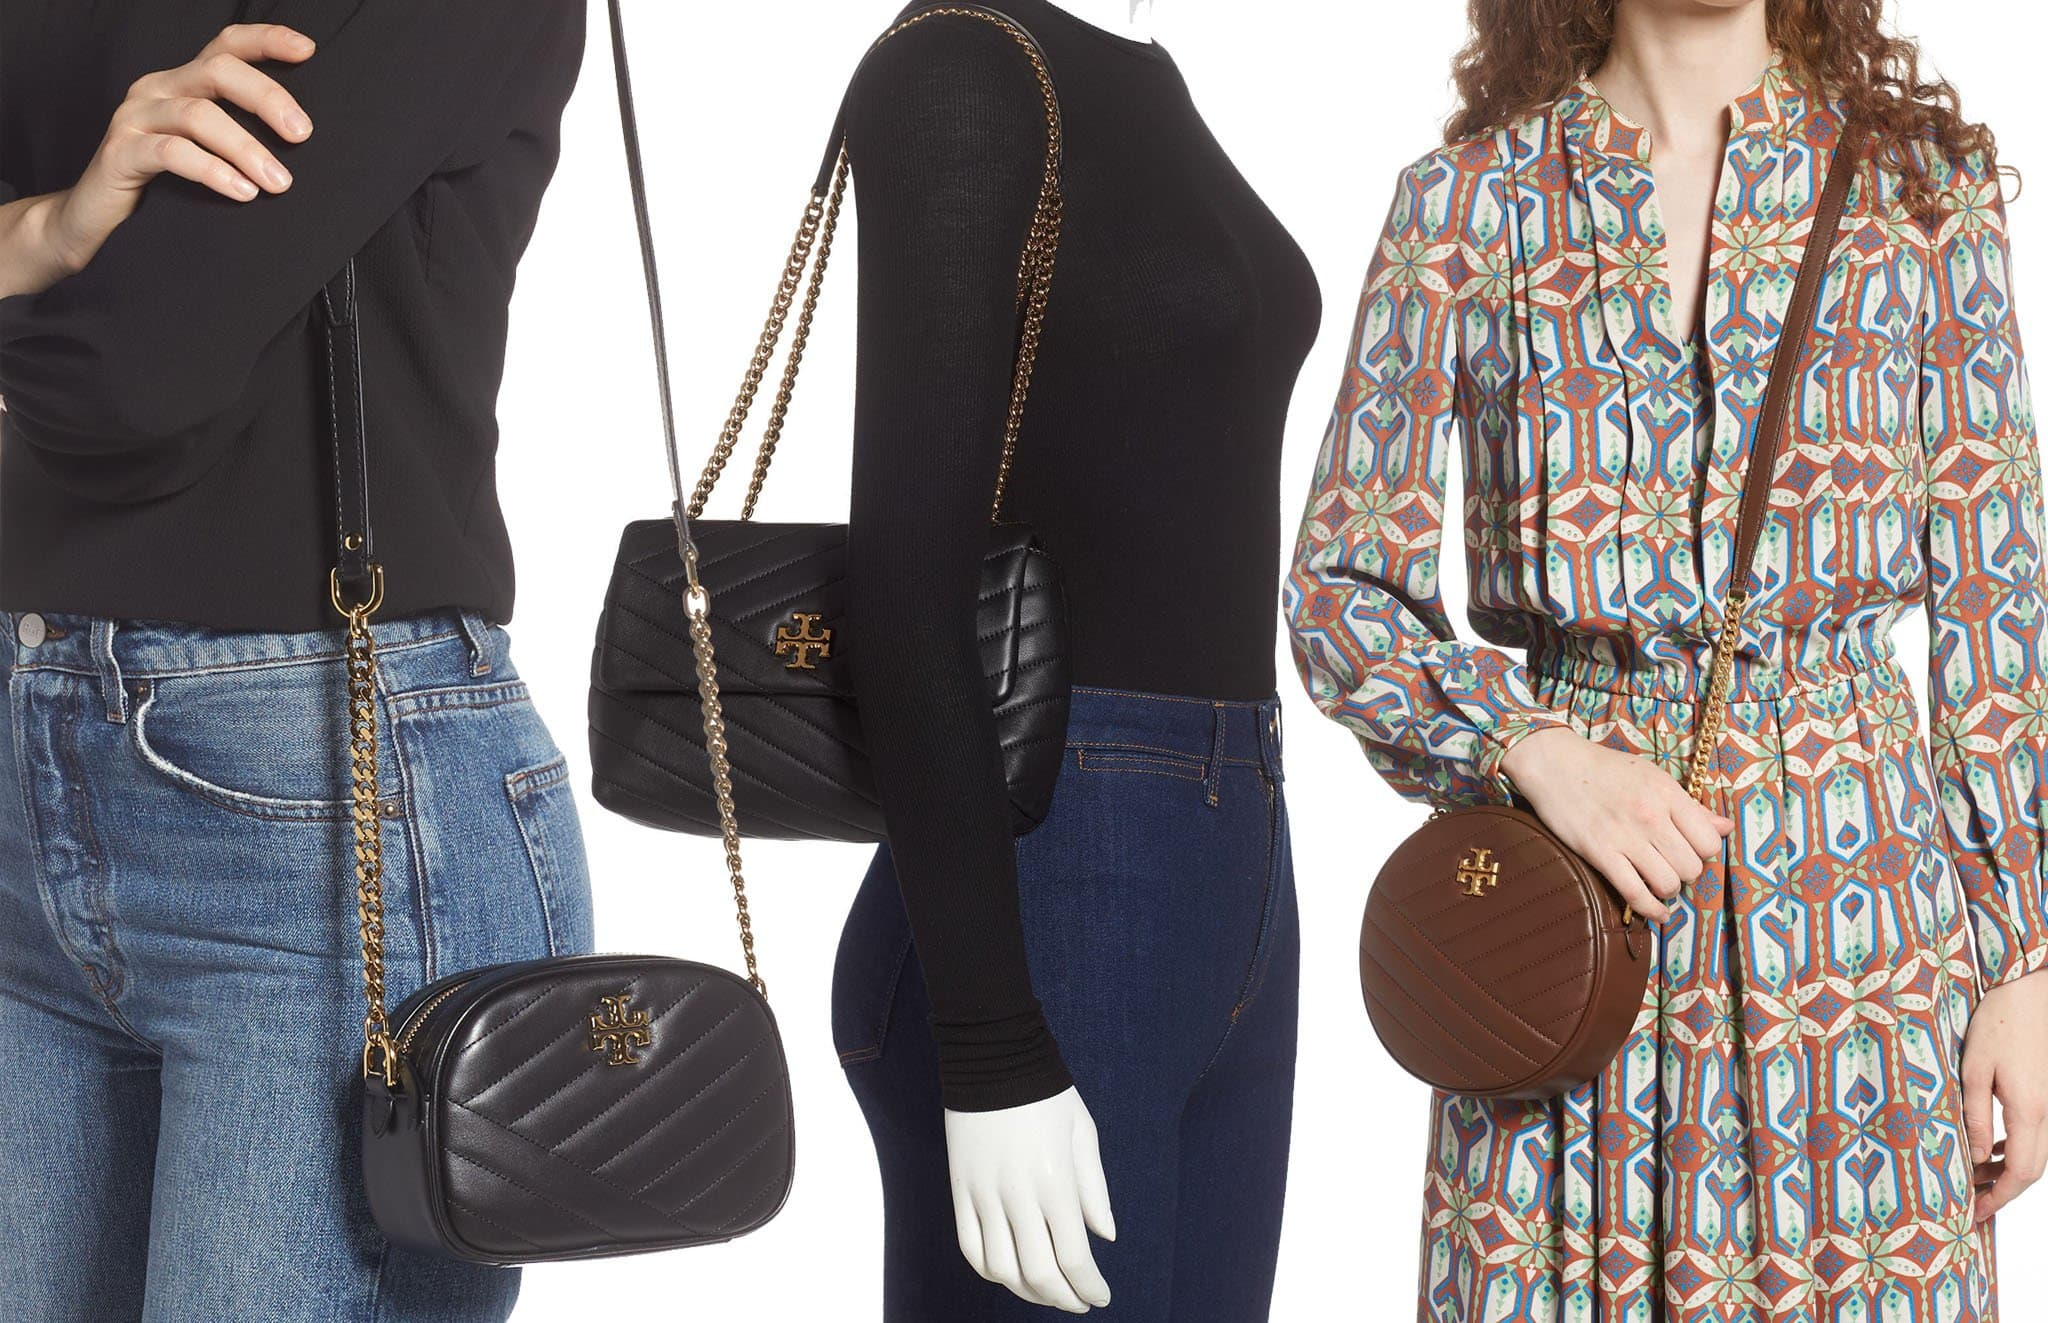 Tory Burch's Kira has a classic minimalist design and is identified by the understated Double T logo hardware